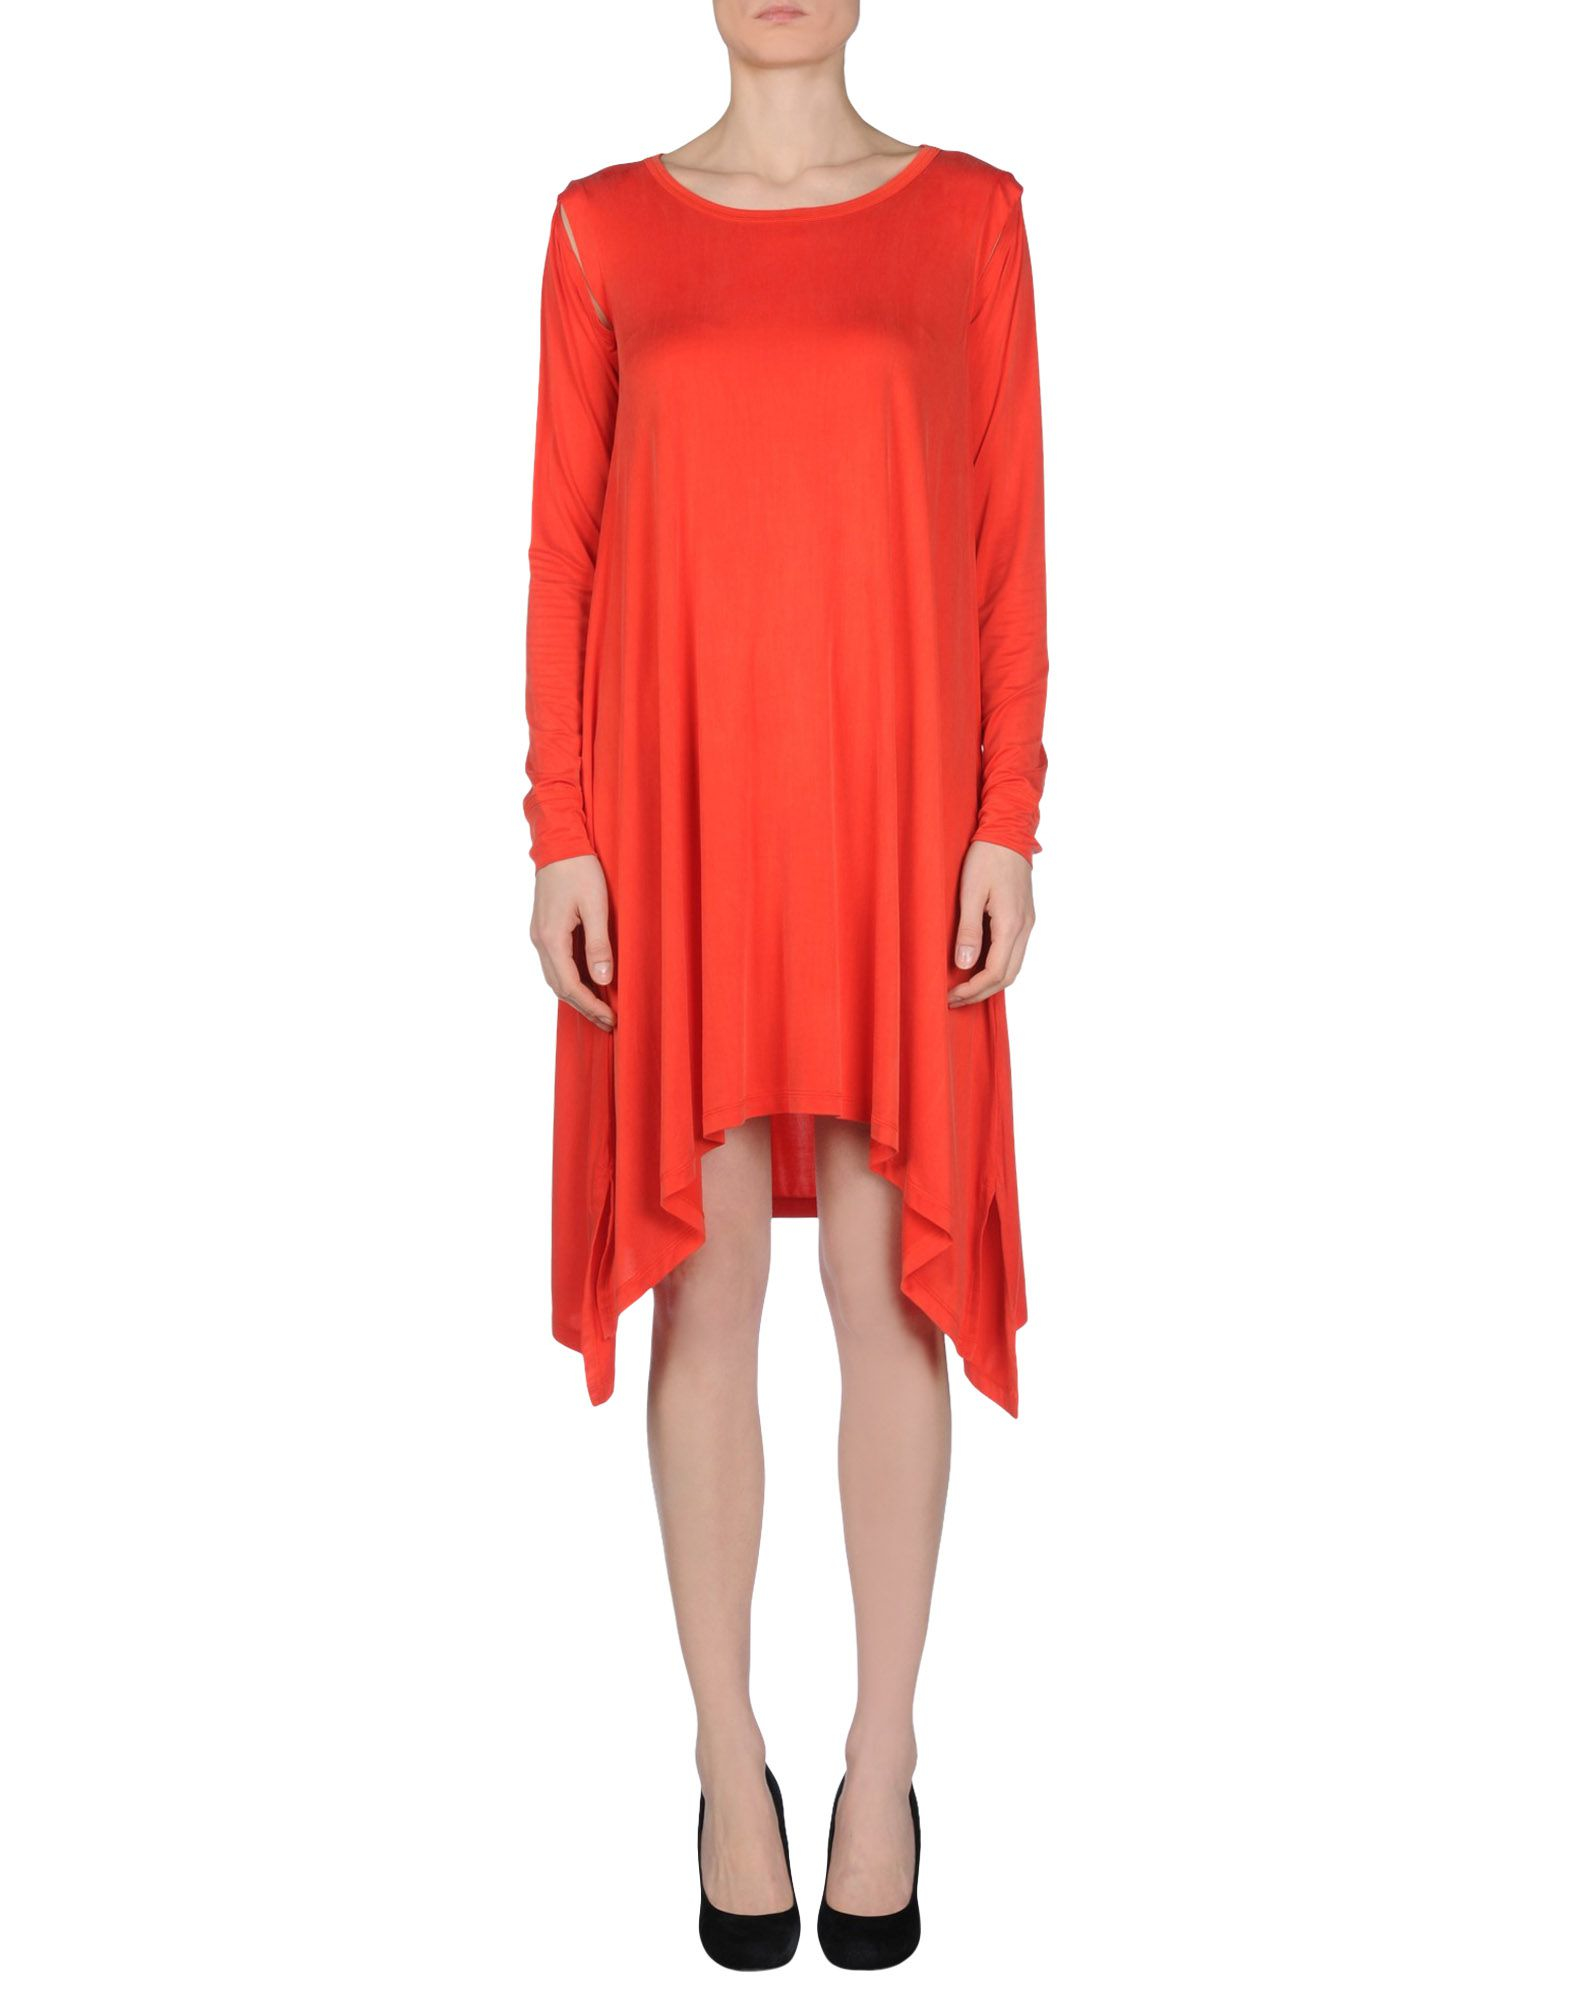 Mm6 by maison martin margiela short dress in red lyst for Mm6 maison margiela